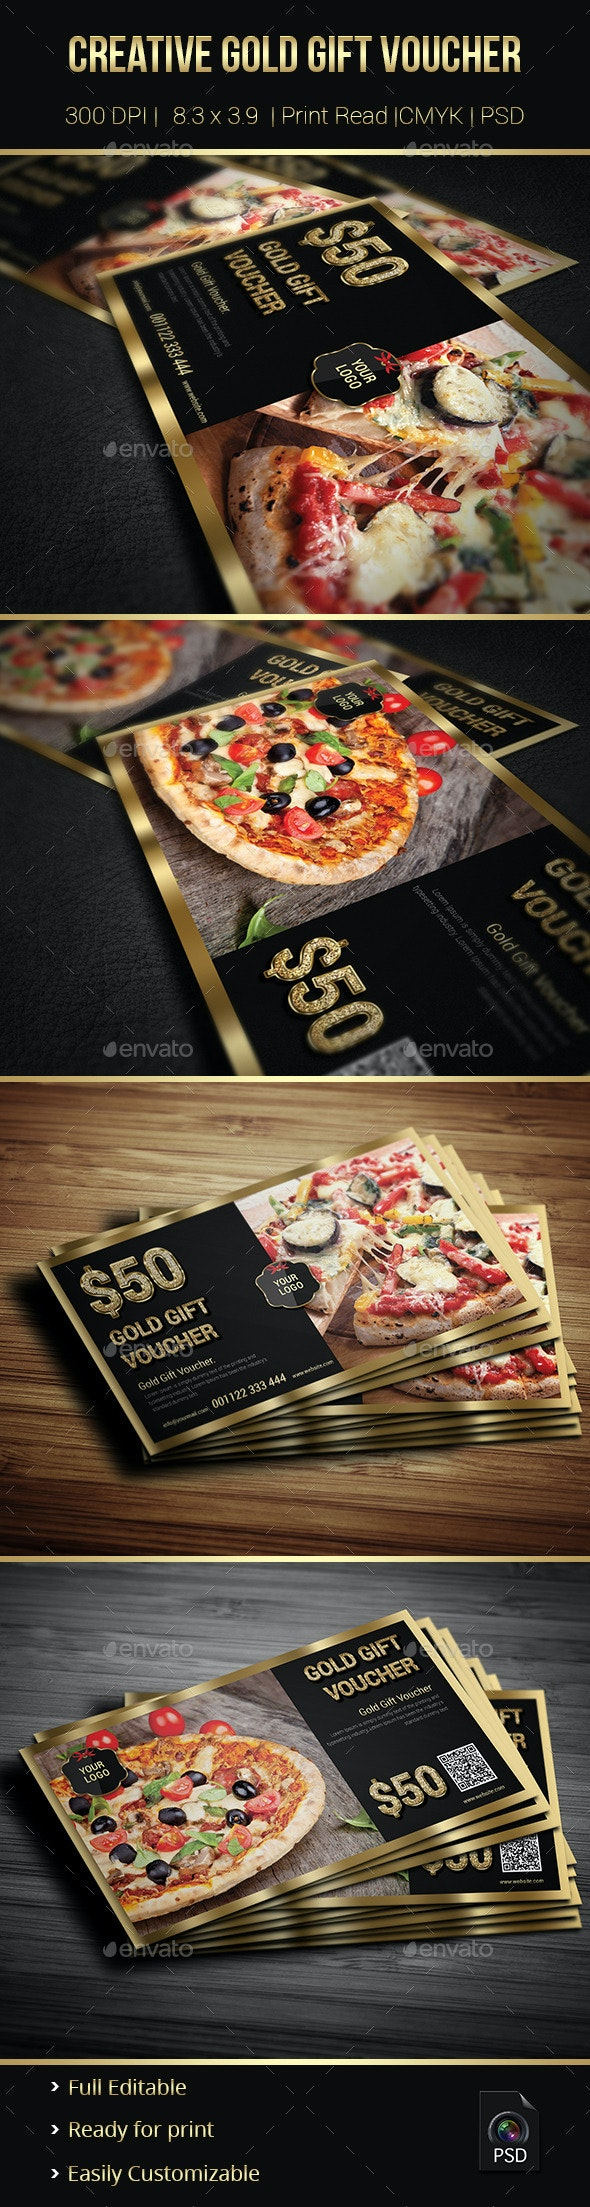 Creative Gold Gift Voucher 02 - Cards & Invites Print Templates